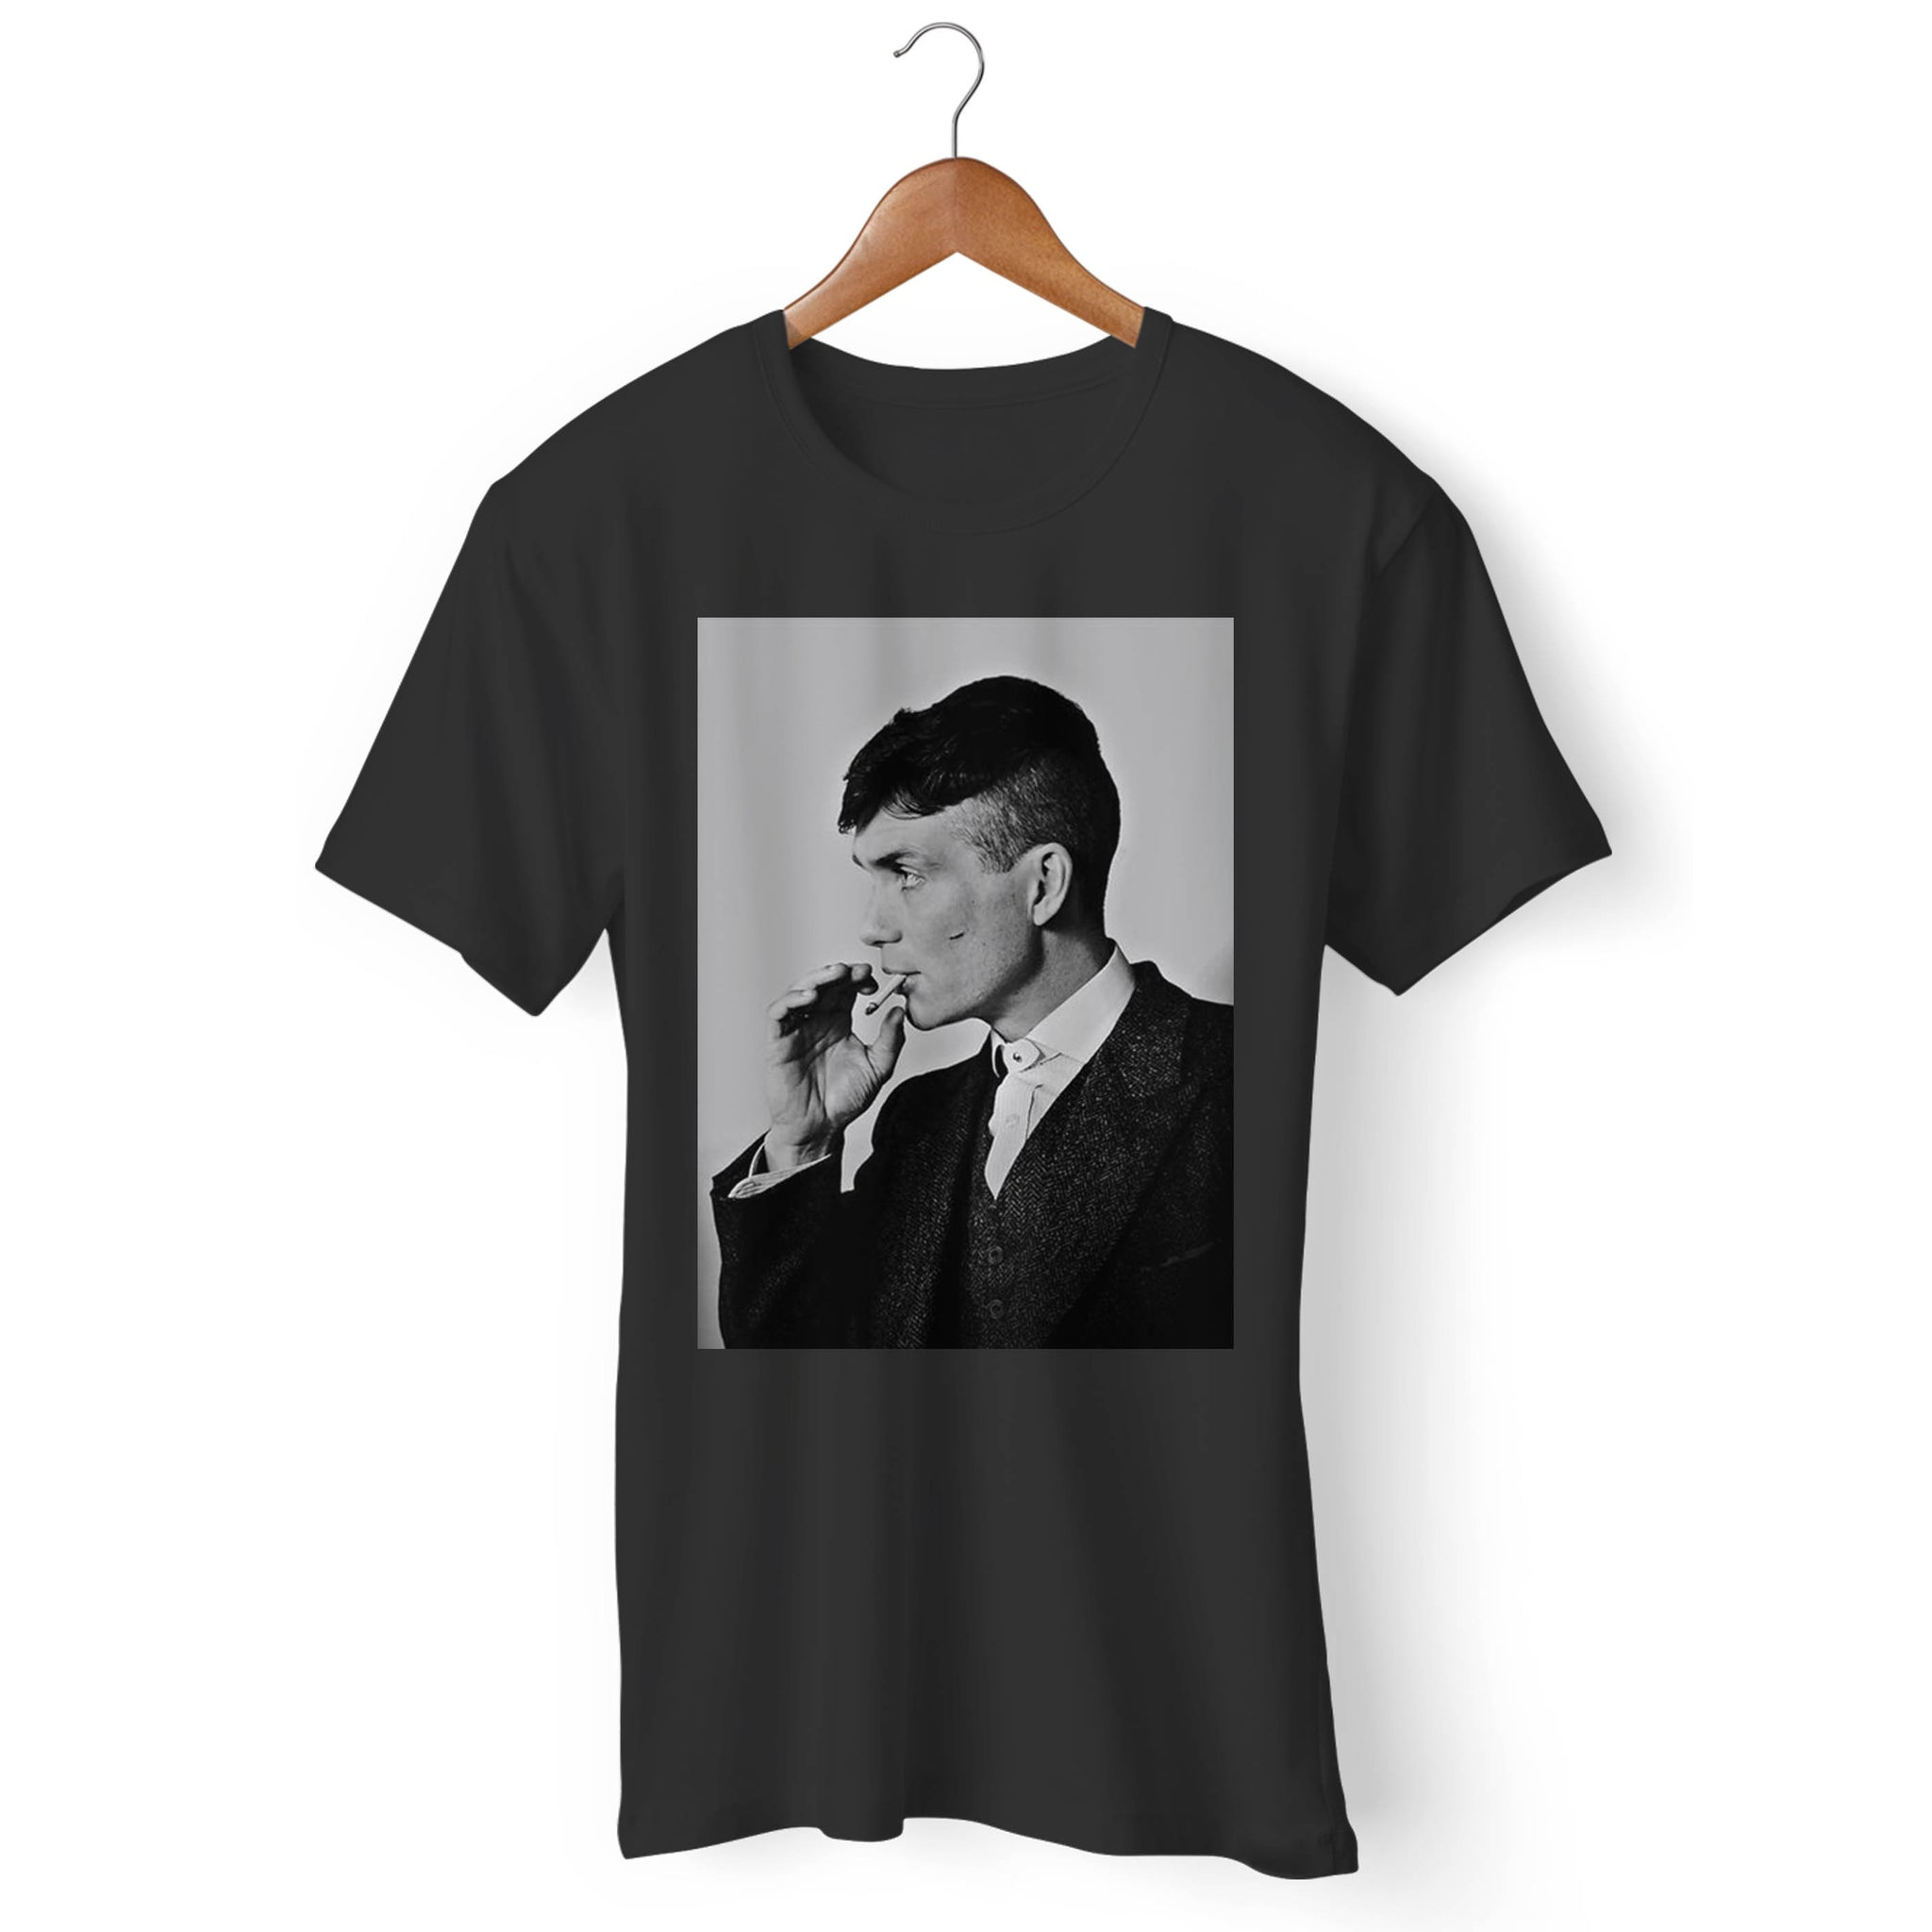 Peaky Blinders Smoking Tommy Shelby Man's T-Shirt